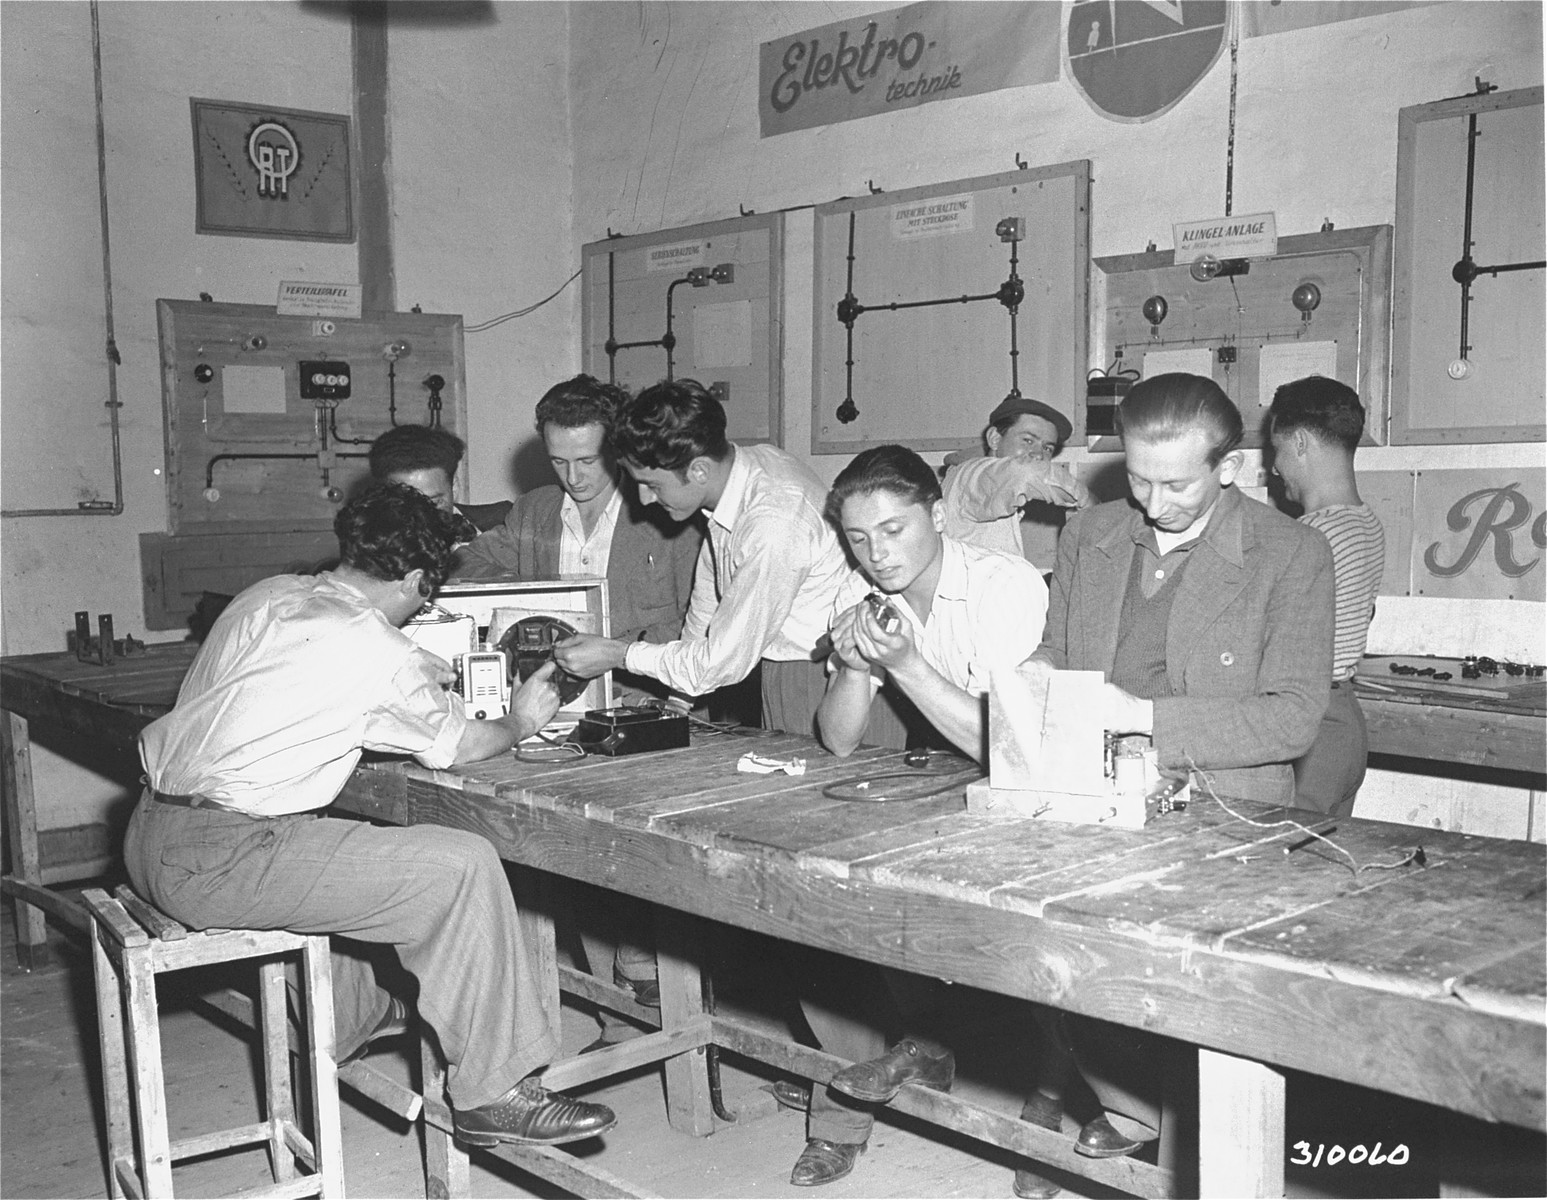 Jewish DP boys at the displaced persons camp in Wetzlar learn to repair radios at the camp's trade school.